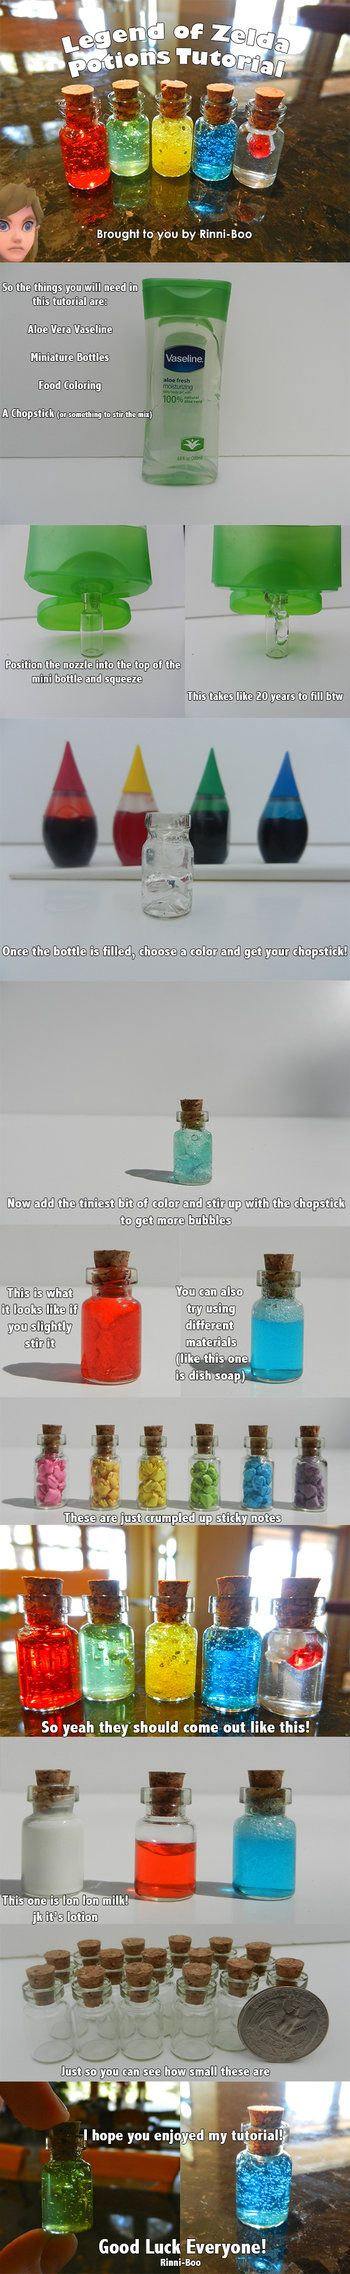 DIY Legend of Zelda Potions Tutoral by Rinni-Boo